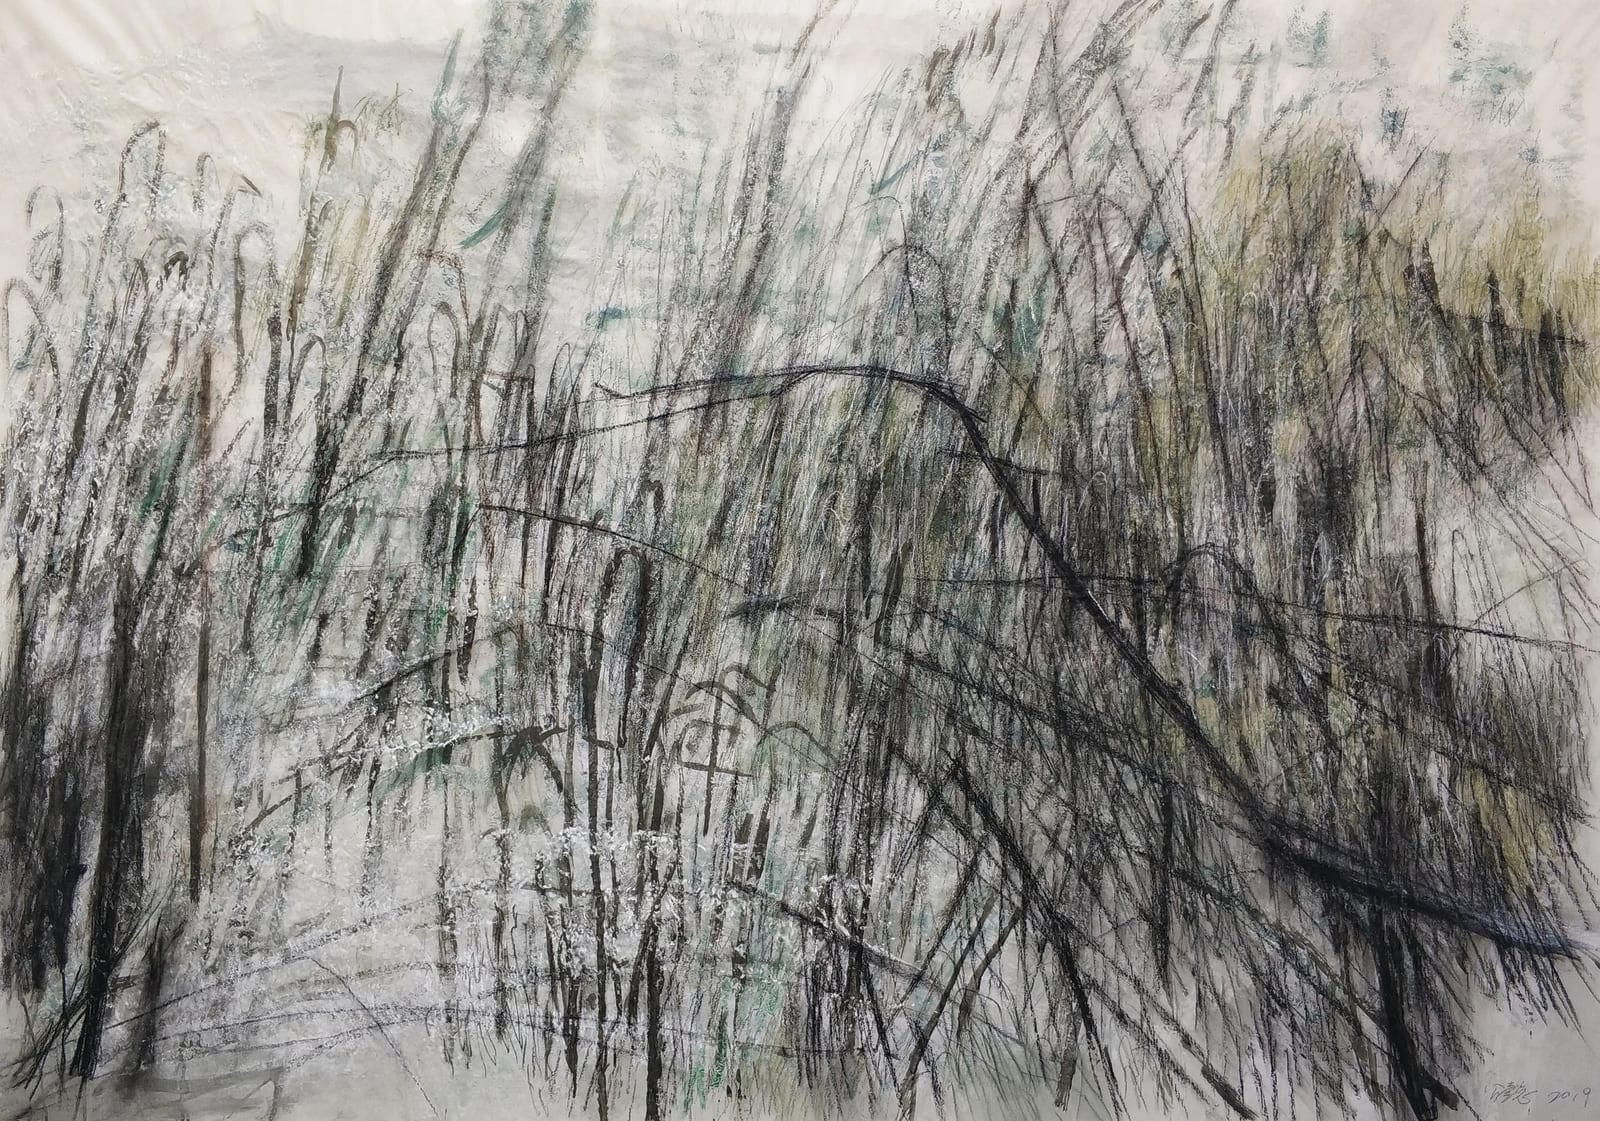 Wang Gongyi 王公懿, Leaves of Grass No.3 草葉集之三, 2019